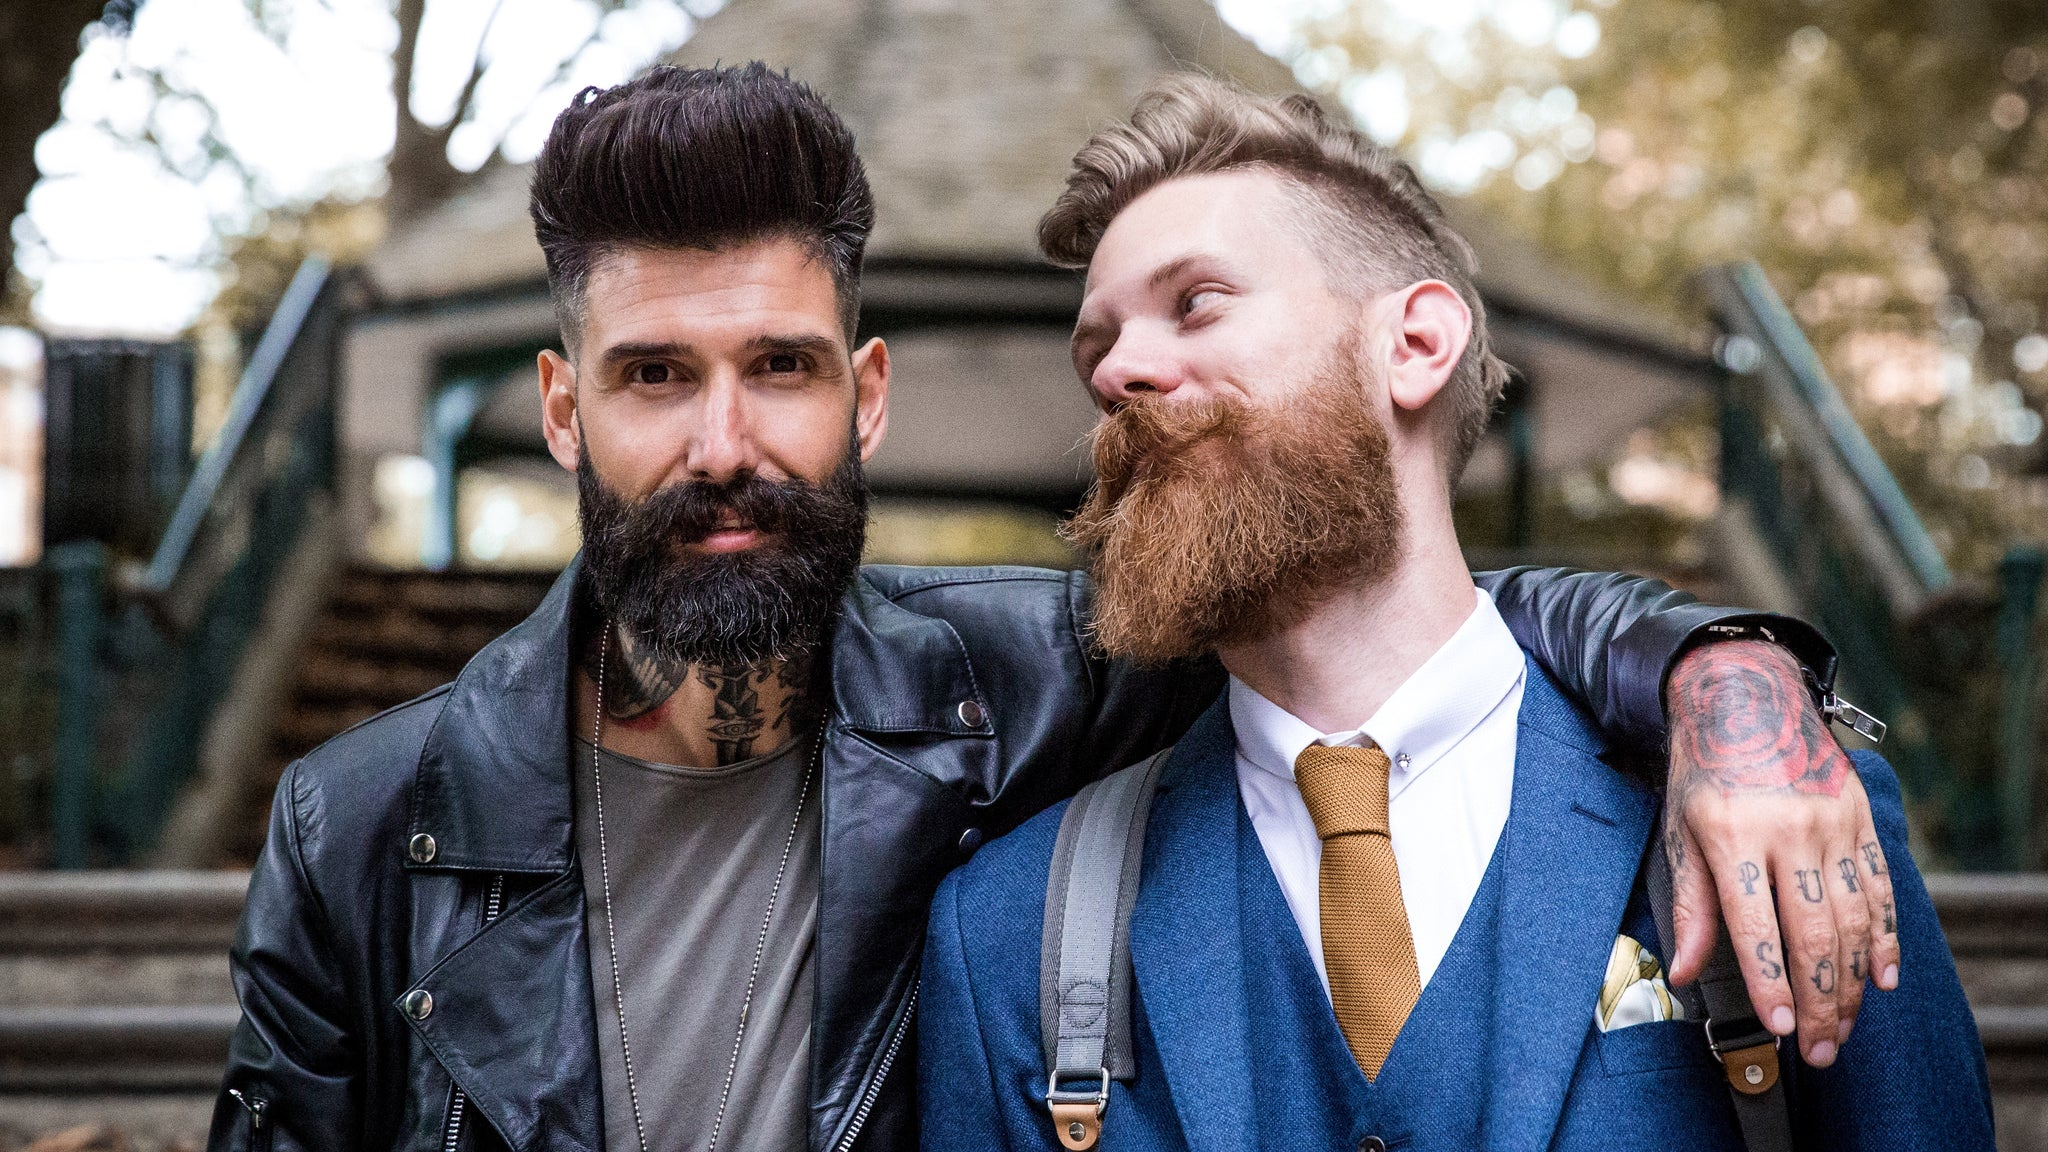 The Ultimate Outfit Guide Based on the Color of Your Beard